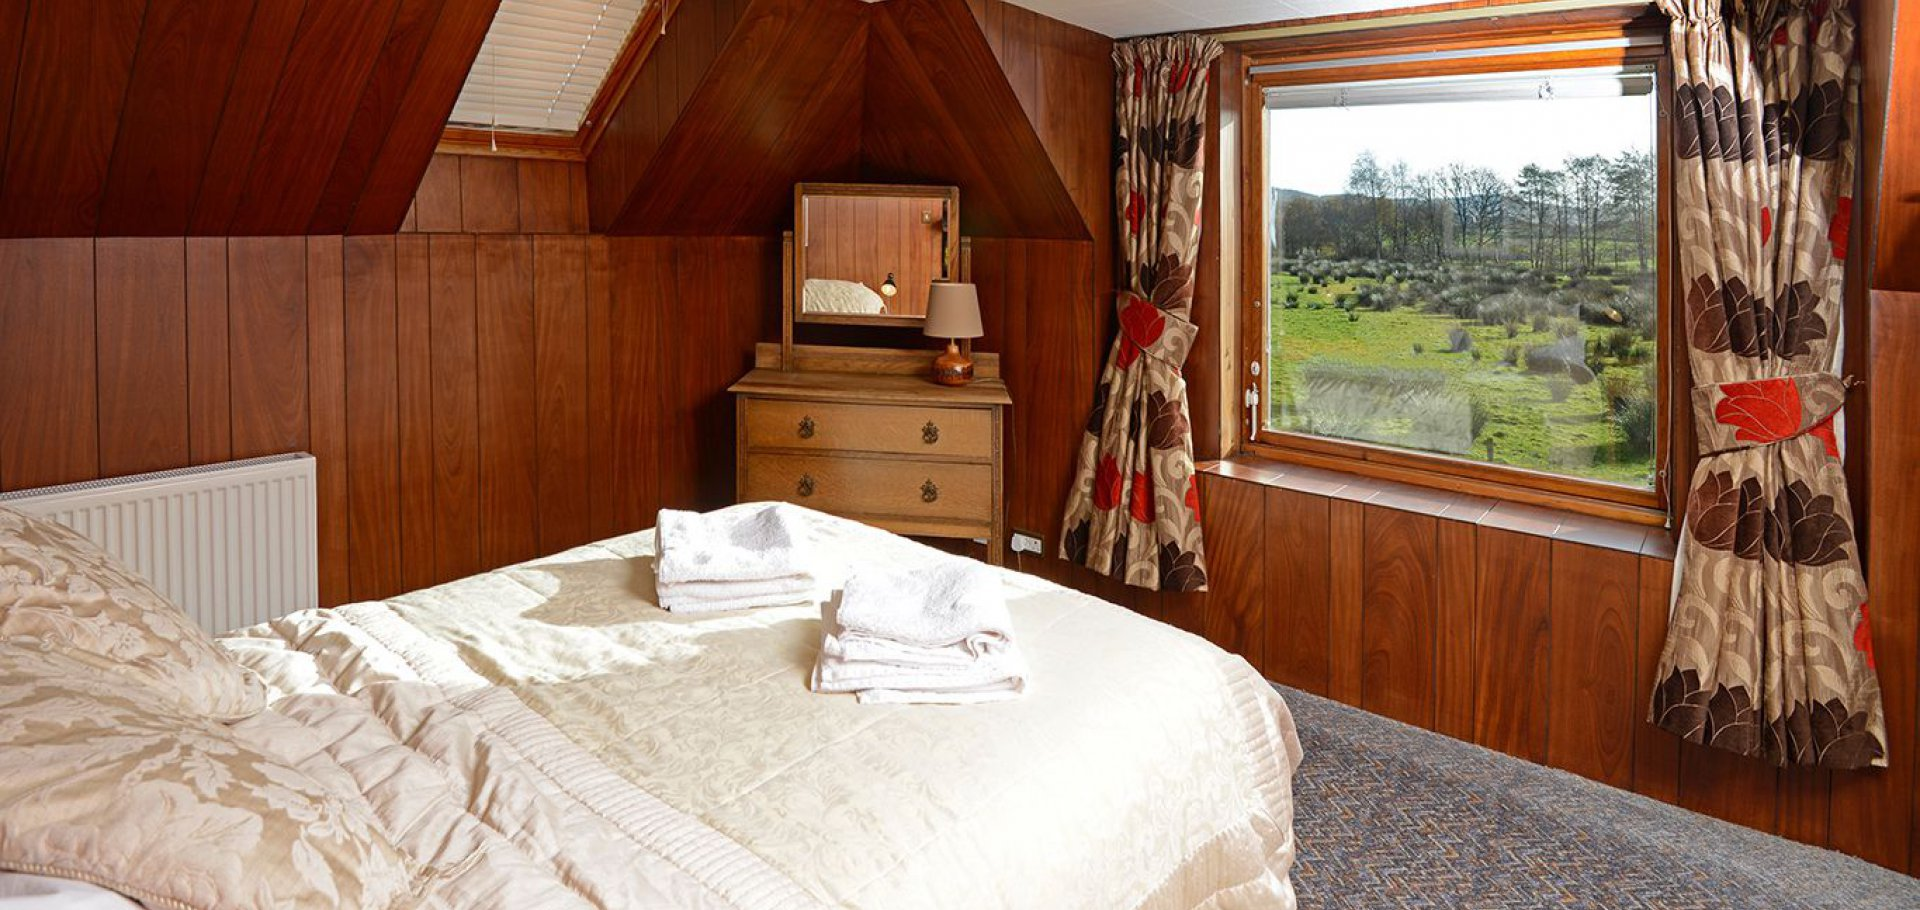 King sized double bedroom at holiday cottage near dalbeattie on the Solway Coast South Scotland